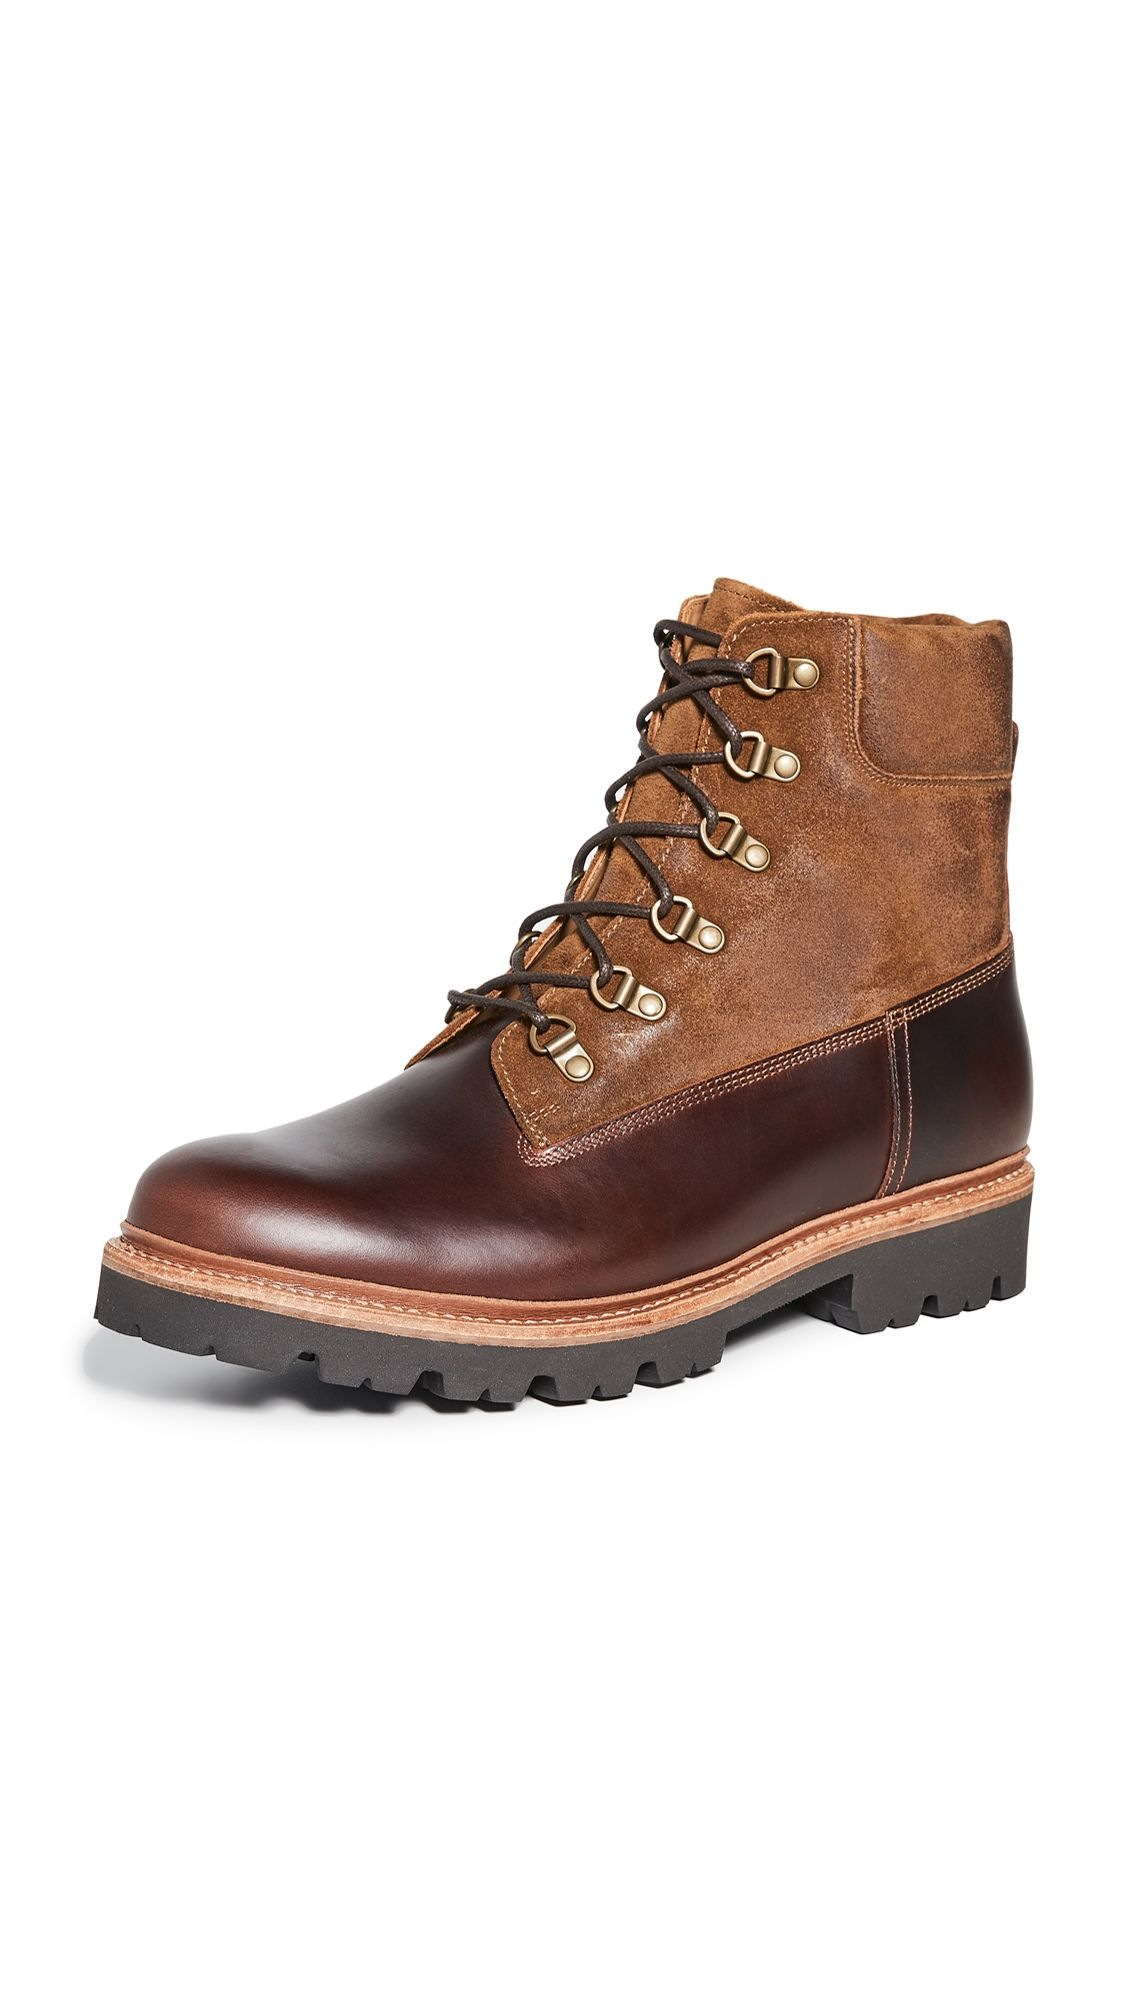 Grenson Shoe /& Boot Laces